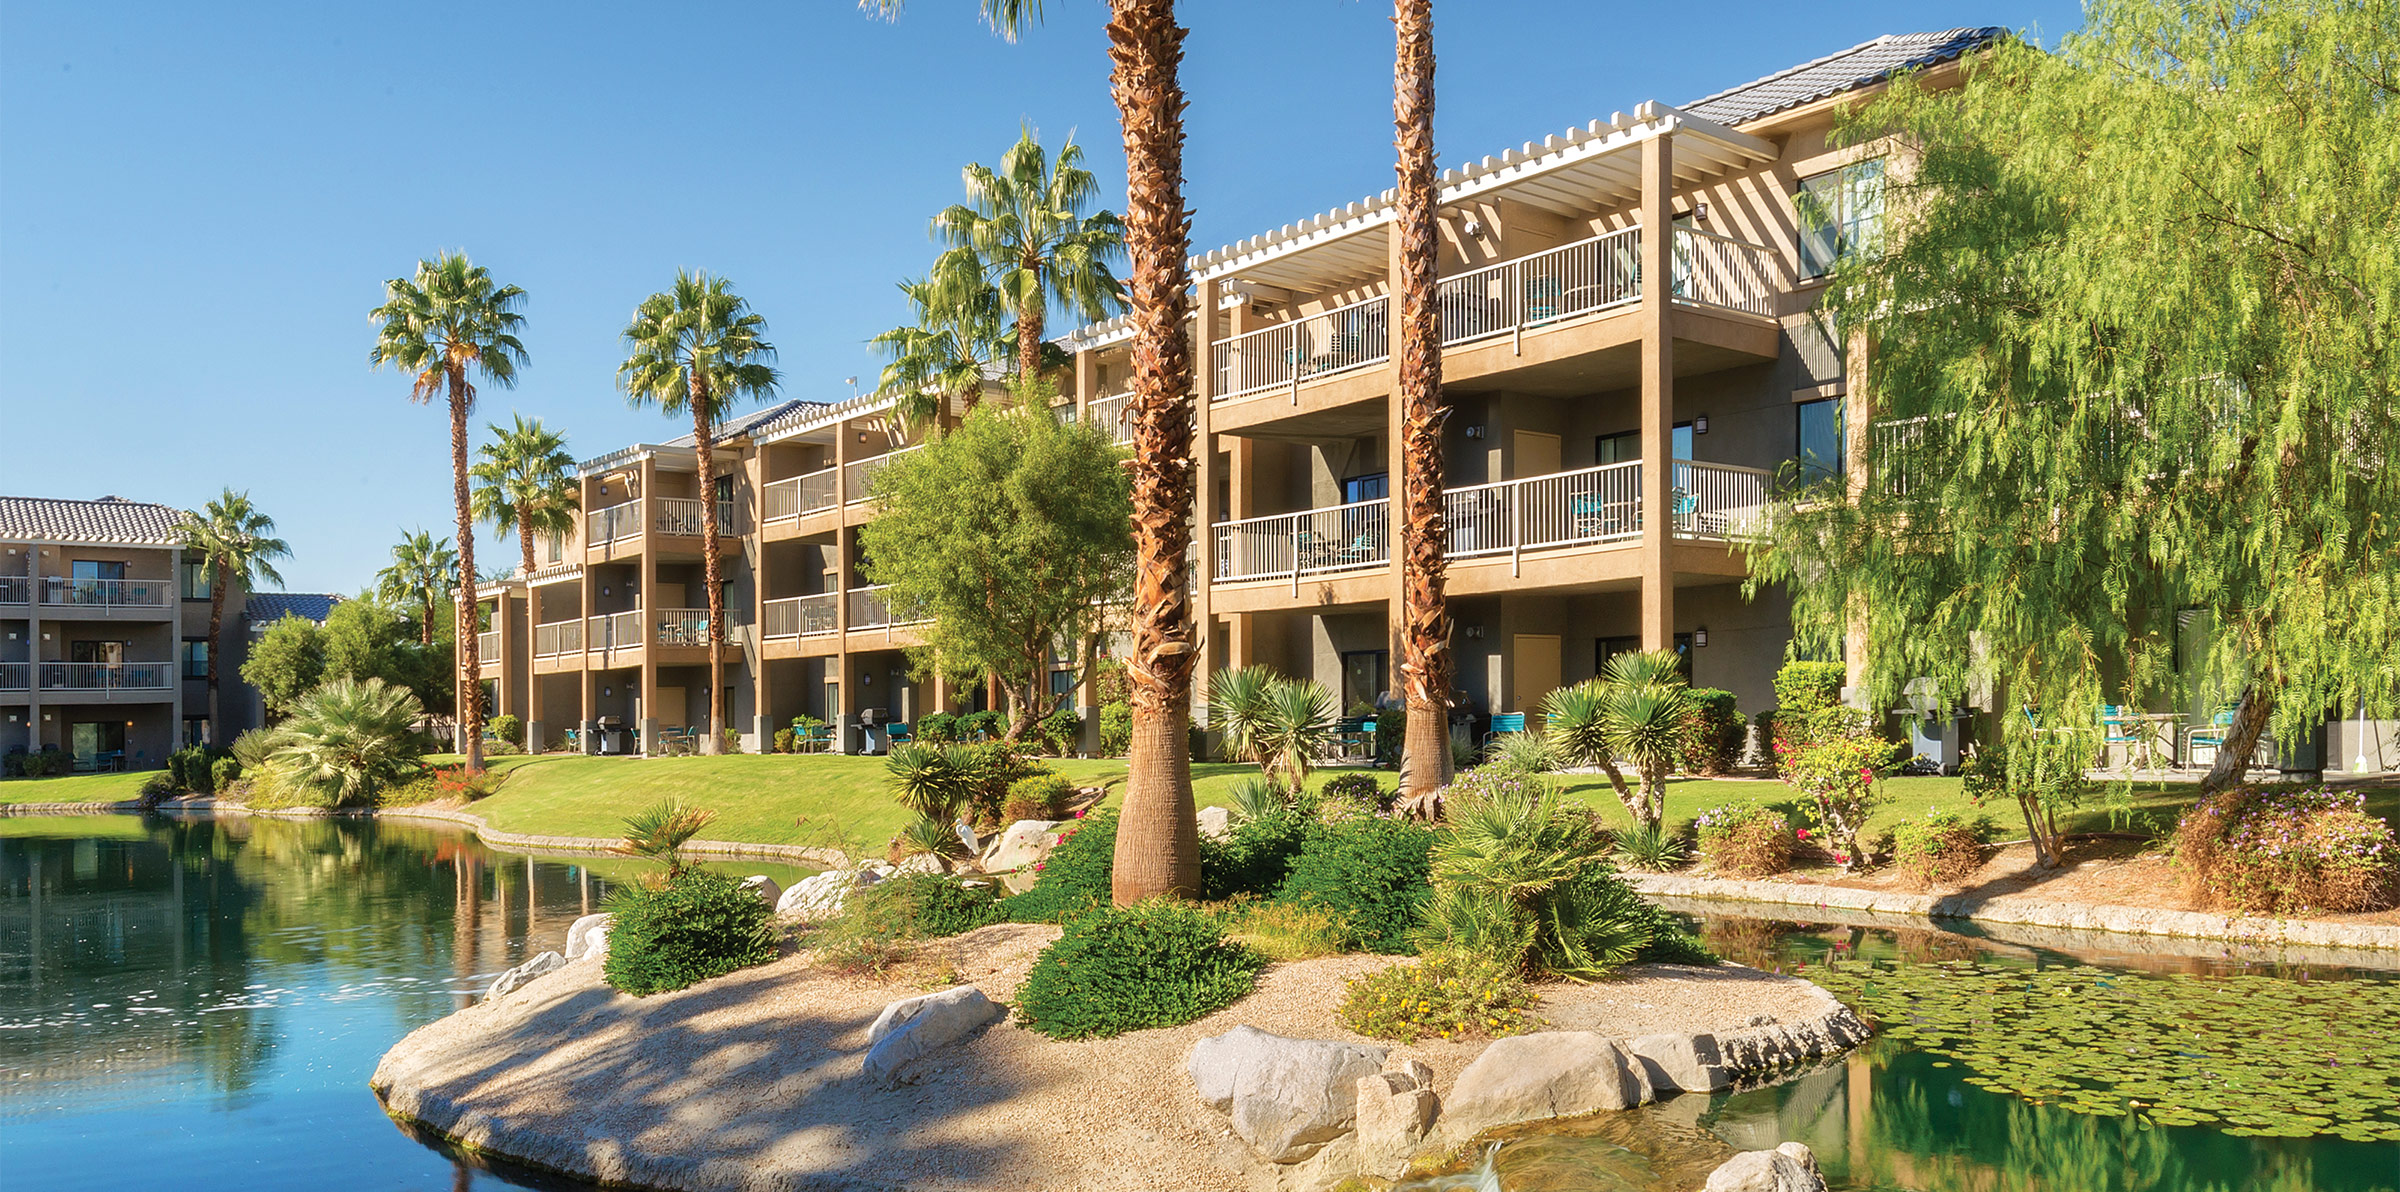 Apartment 1 Bedroom 1 Bath In Indio  CA   Palm Springs  5 miles from COACHELLA photo 18634795